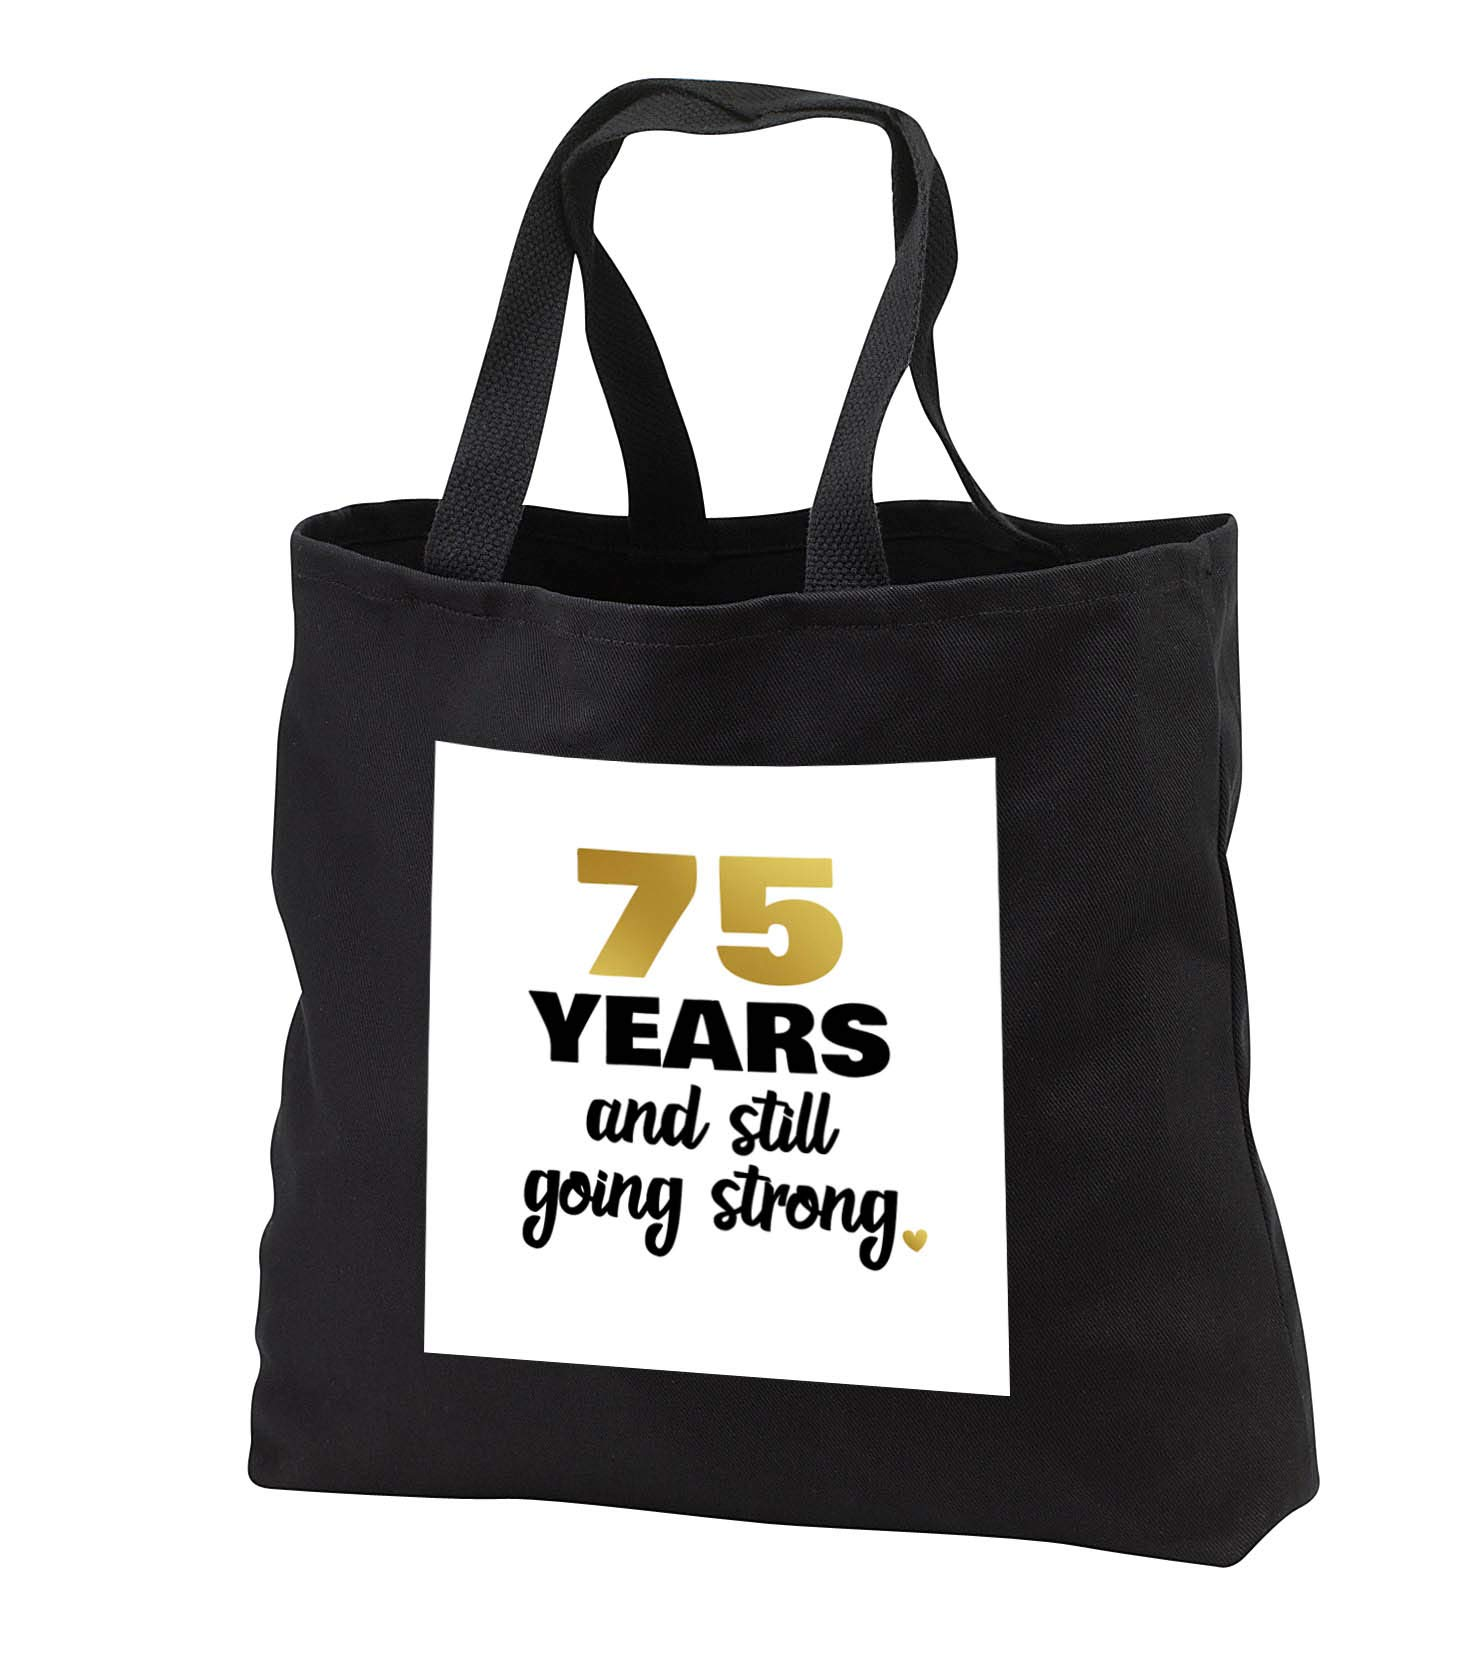 Janna Salak Designs Anniversary - 75 Year Anniversary or Birthday Still Going Strong 75th Wedding Gift - Tote Bags - Black Tote Bag JUMBO 20w x 15h x 5d (tb_289706_3)